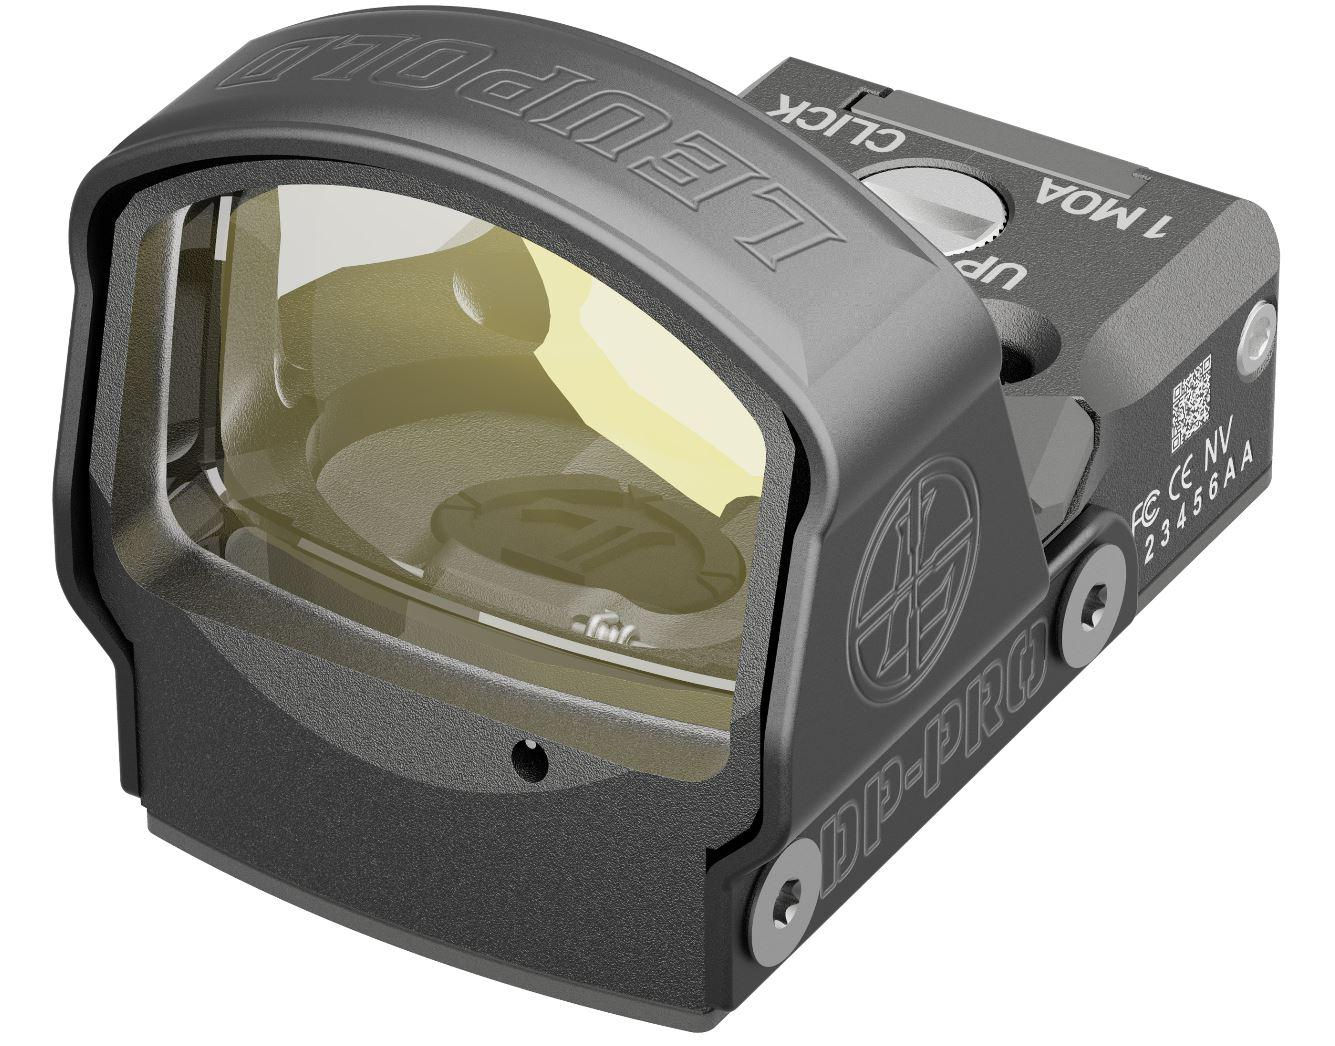 Leupold Adds Night Vision Optimized Model to Popular DeltaPoint Pro Line